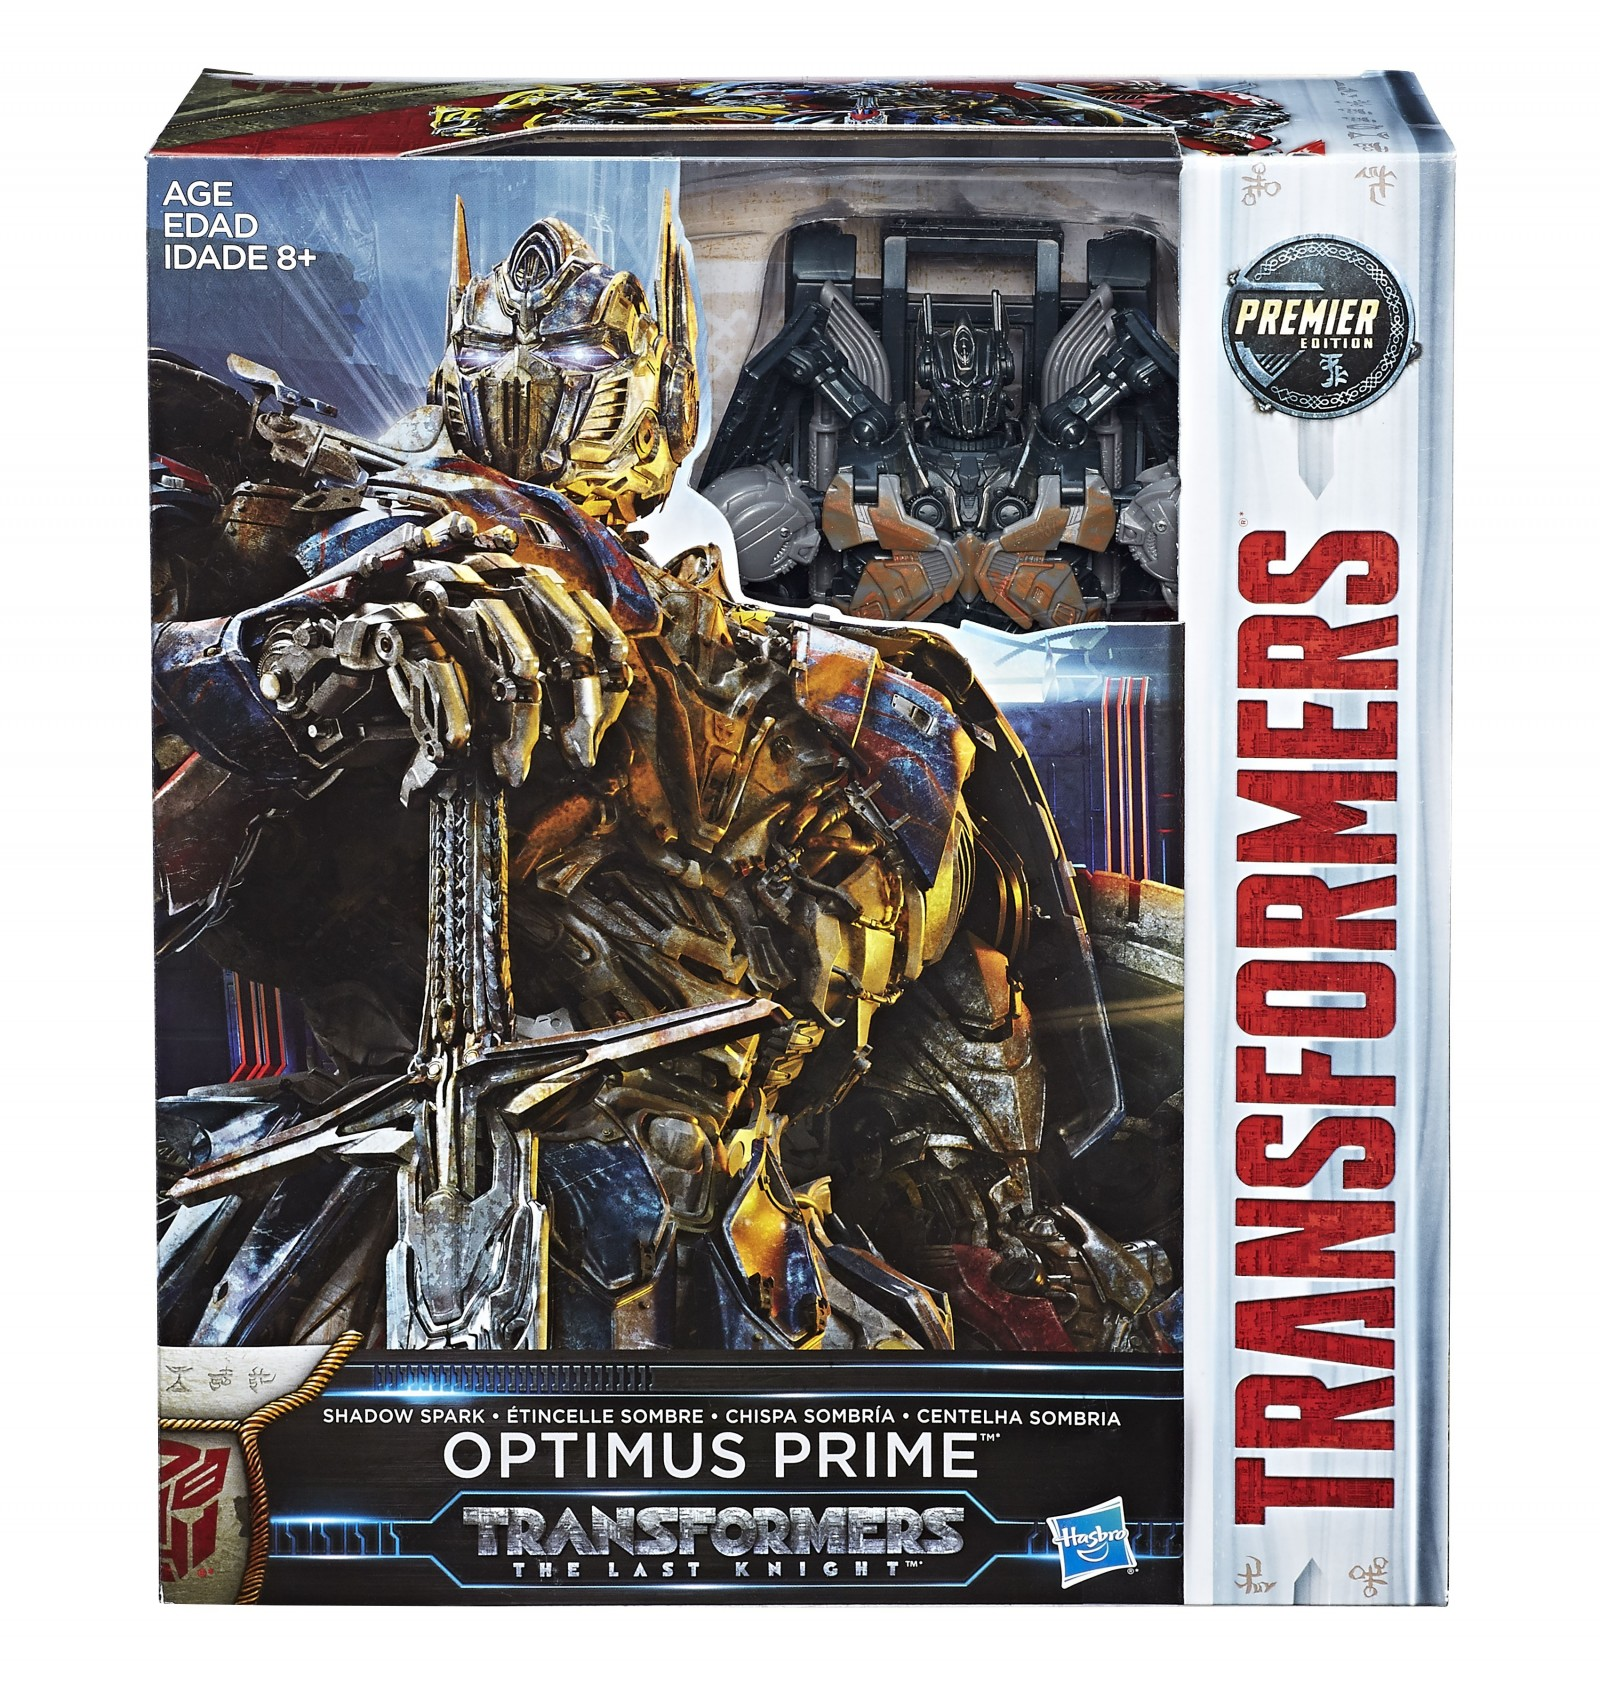 More info and large images of Shadow Spark Optimus Prime and MPM-3 ...